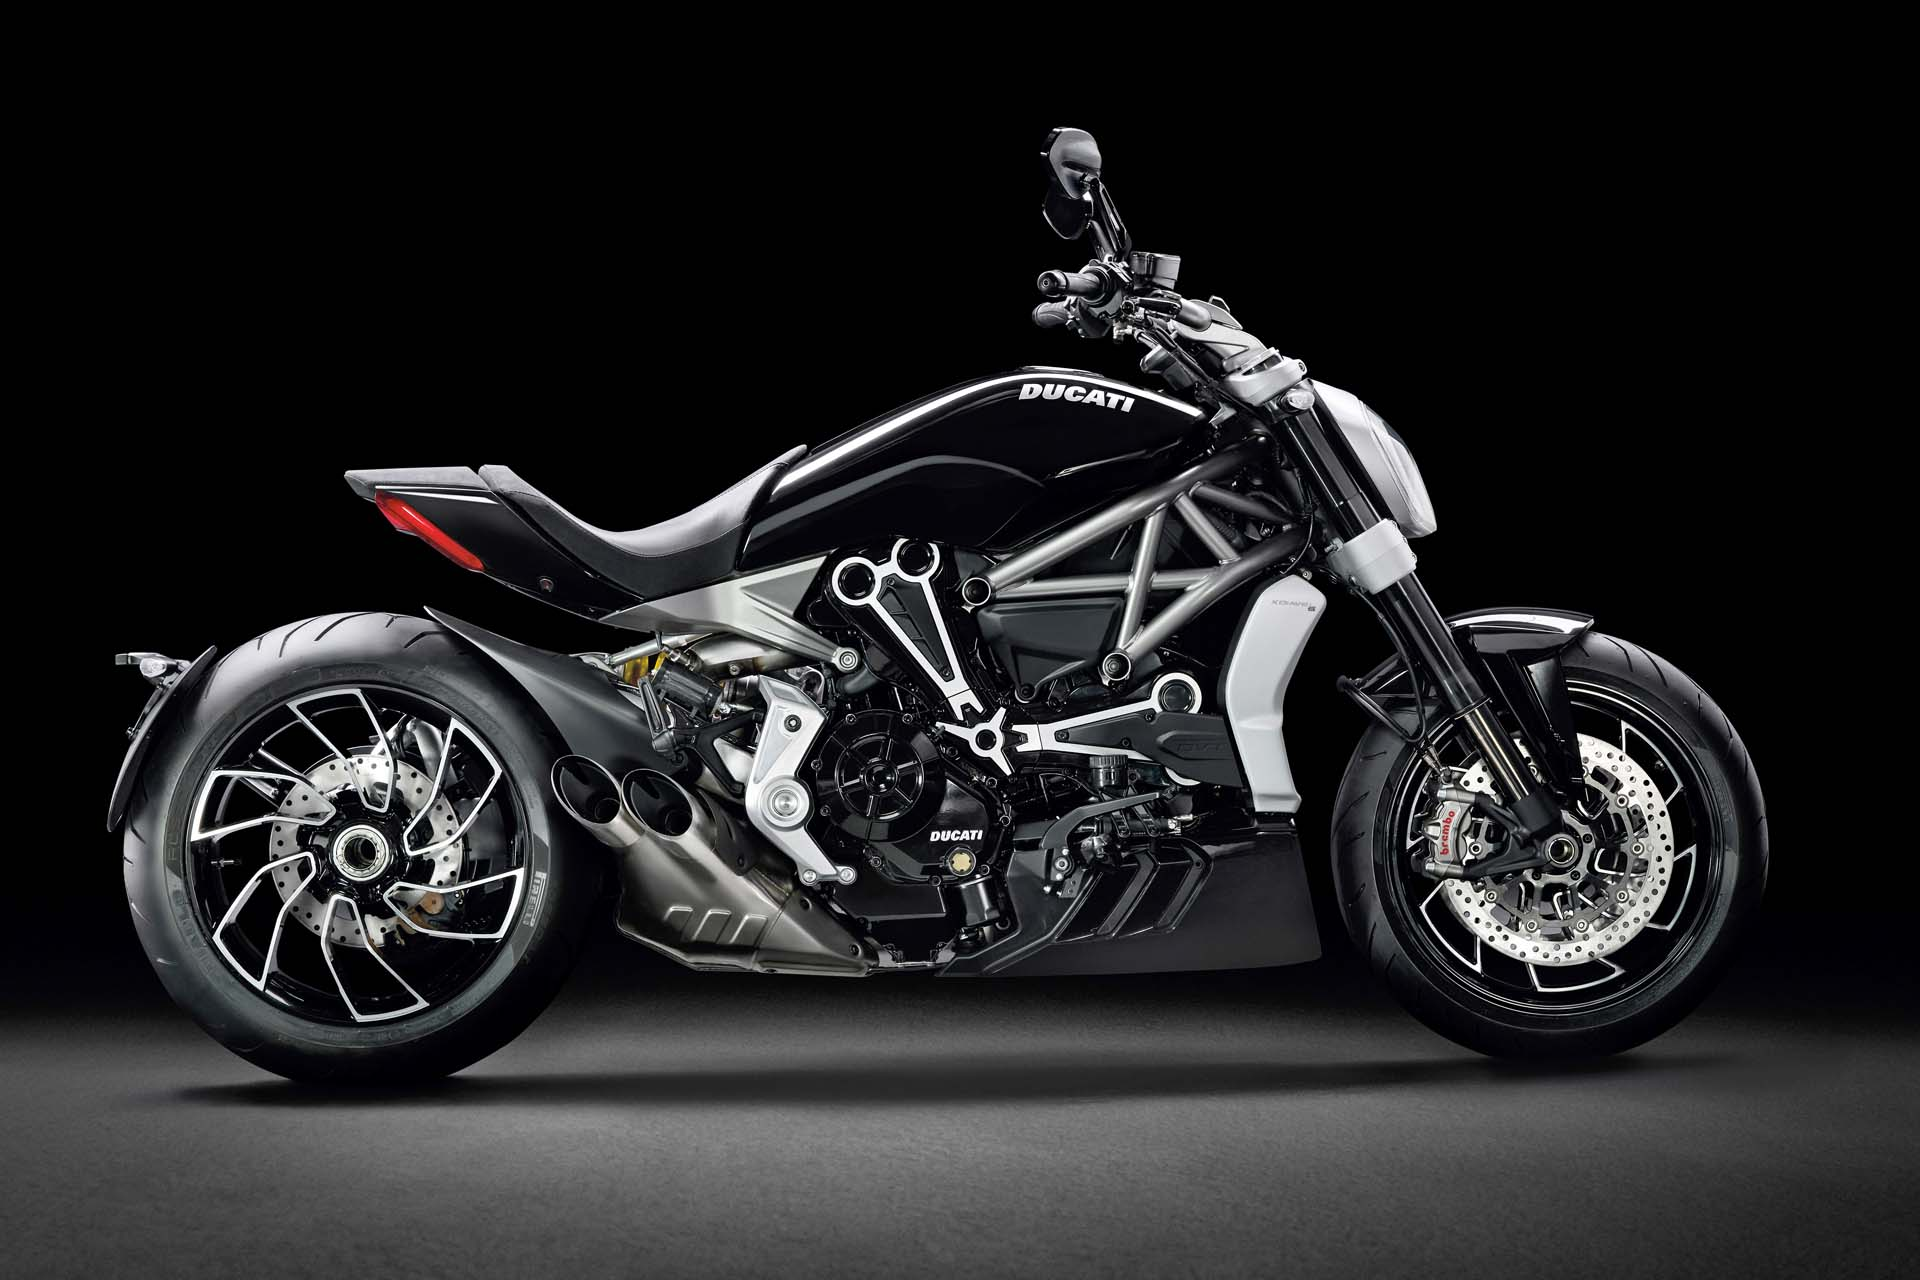 """It will do everything a cruiser won't,"" says Ducati, and if first impressions count for anything the Ducati xDiavel will be a bruiser when it hits showroom floors. The 95 lb-ft, 1,262cc engine is equipped with MotoGP-derived Ducati Power Launch software."